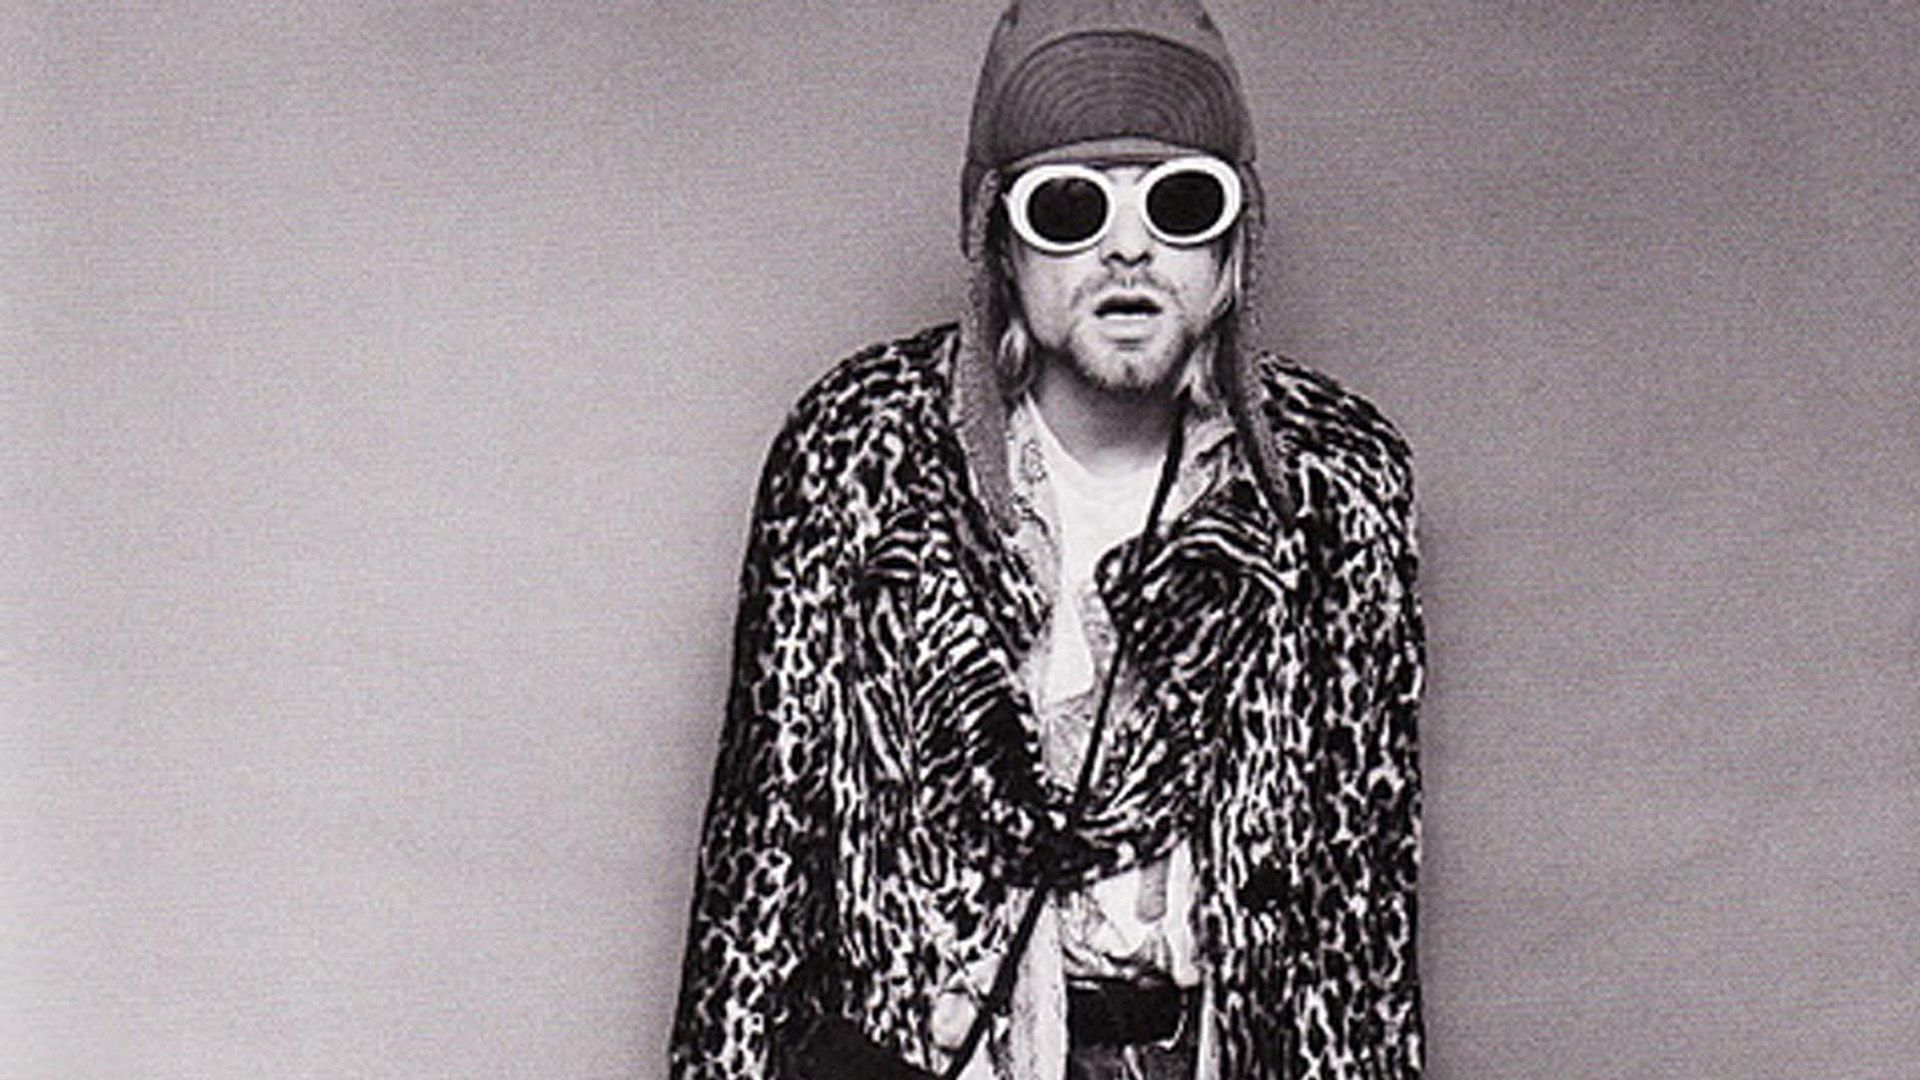 Kurt Cobain HD Desktop Wallpaper Widescreen High Definition